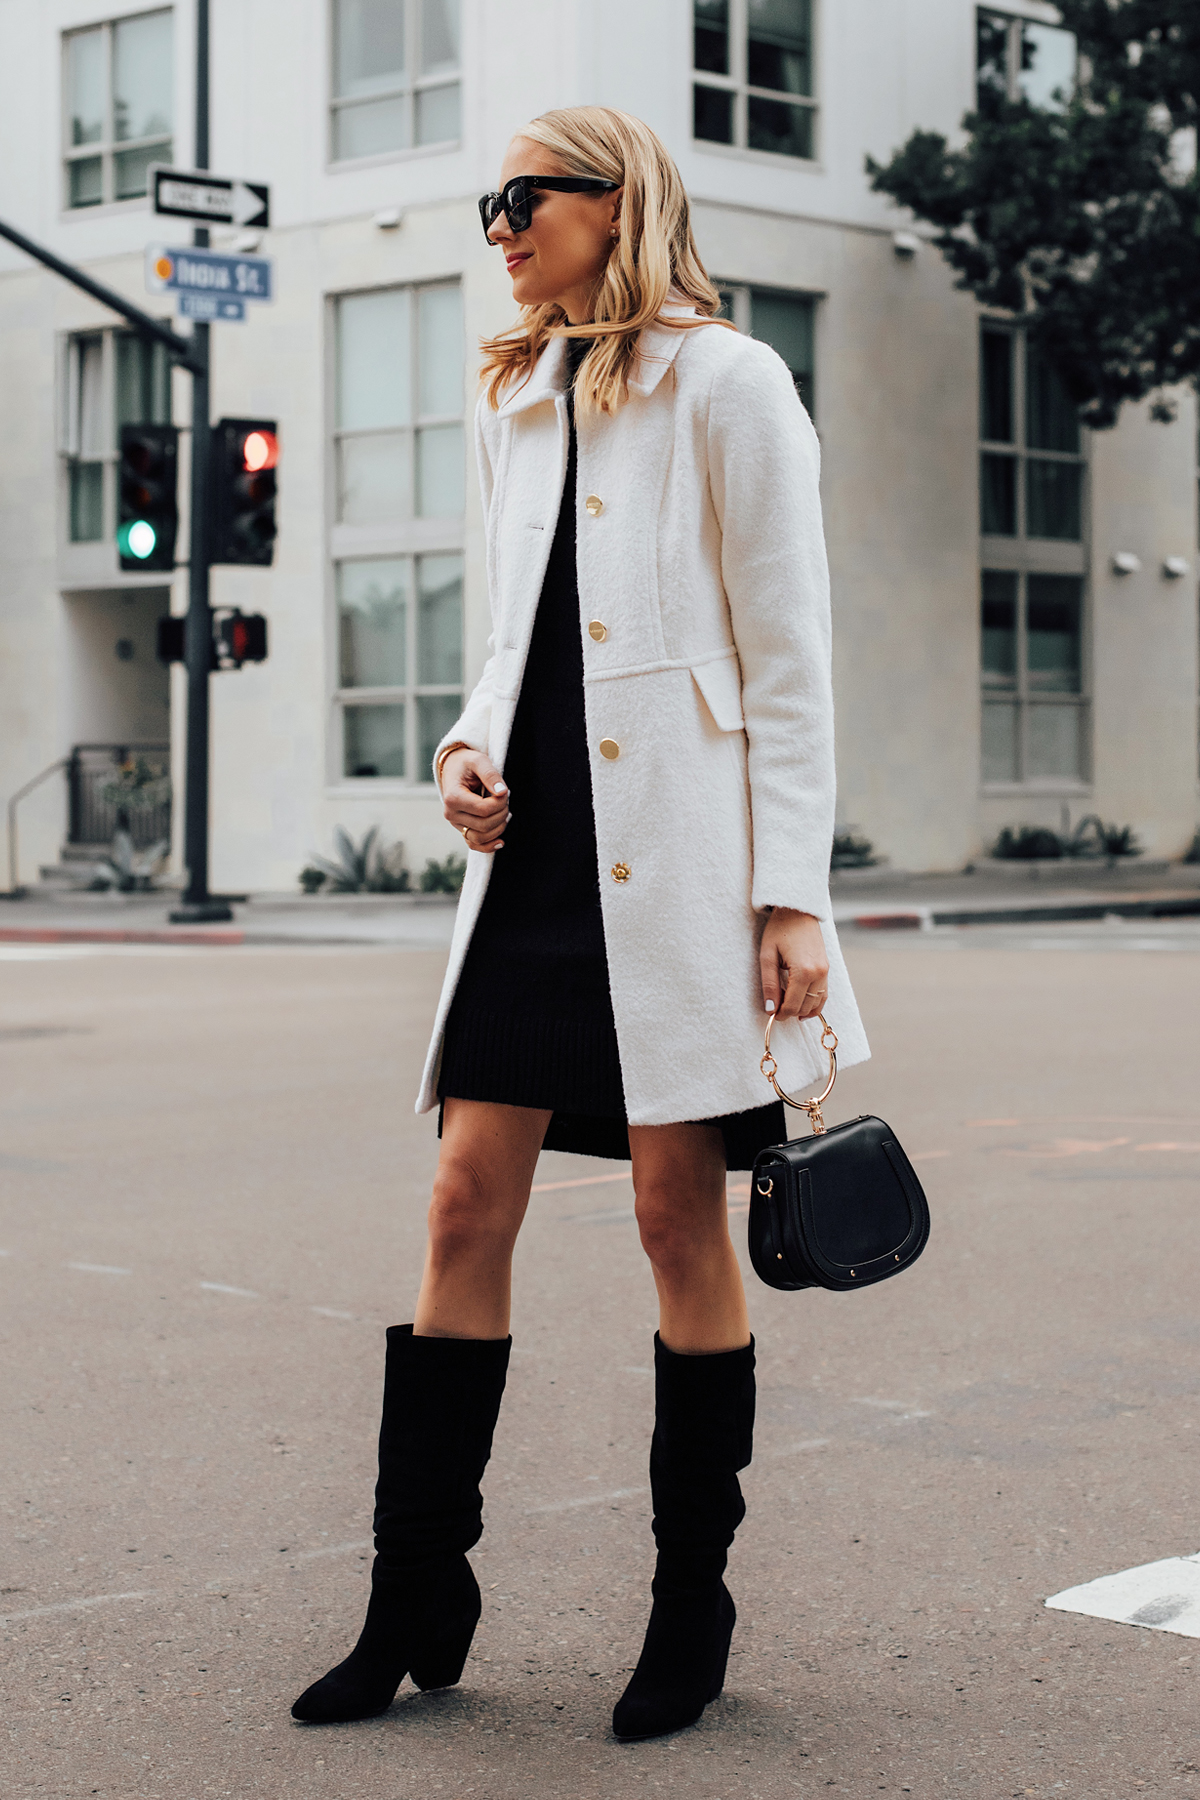 Blonde Woman Wearing Winter White Coat Black Sweater Dress Black Slouchy Boots Black Clutch Handbag Fashion Jackson San Diego Fashion Blogger Holiday Style